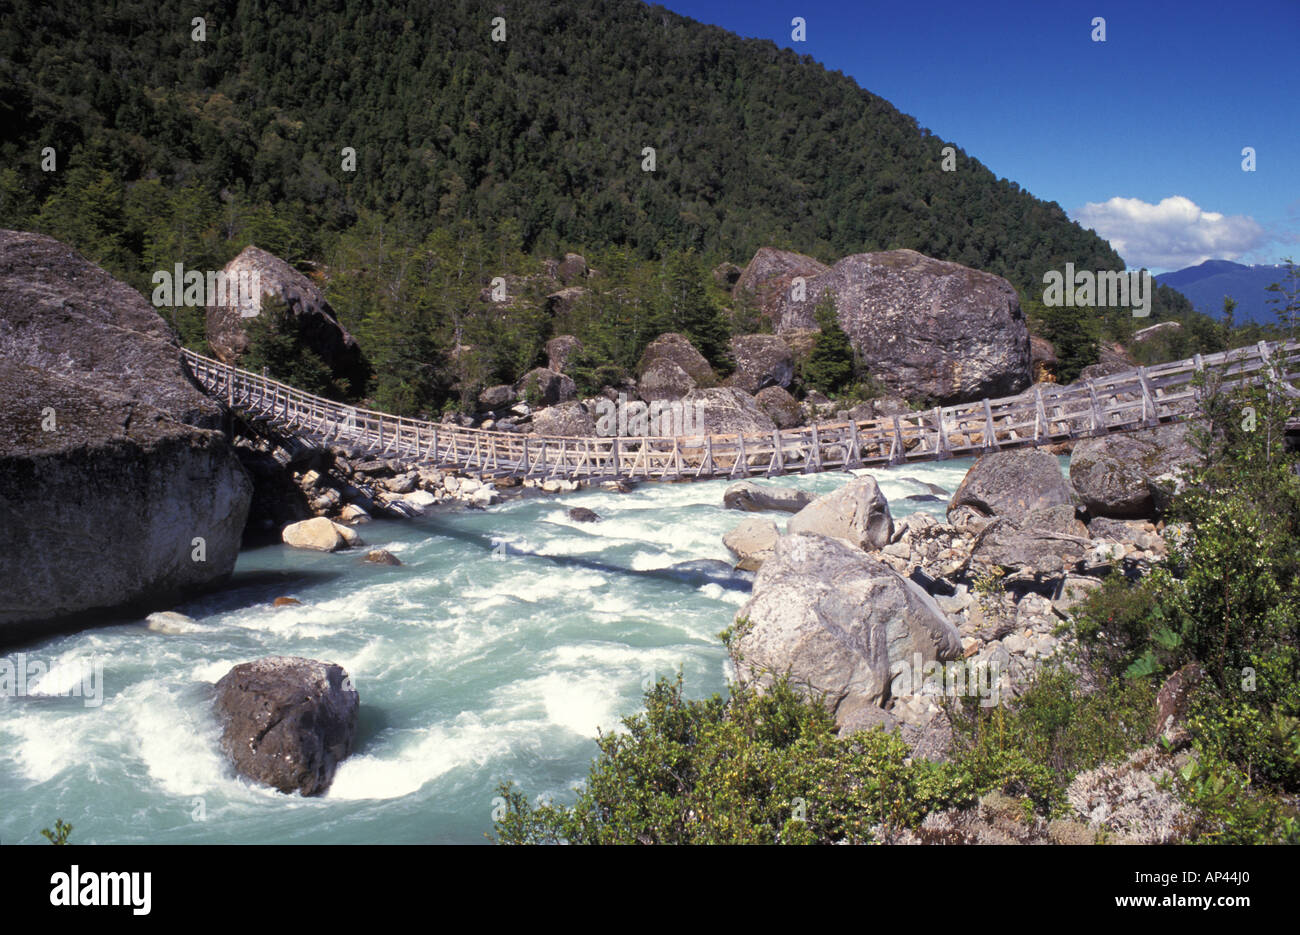 Chile, Patagonia, Queulat National Park. - Stock Image